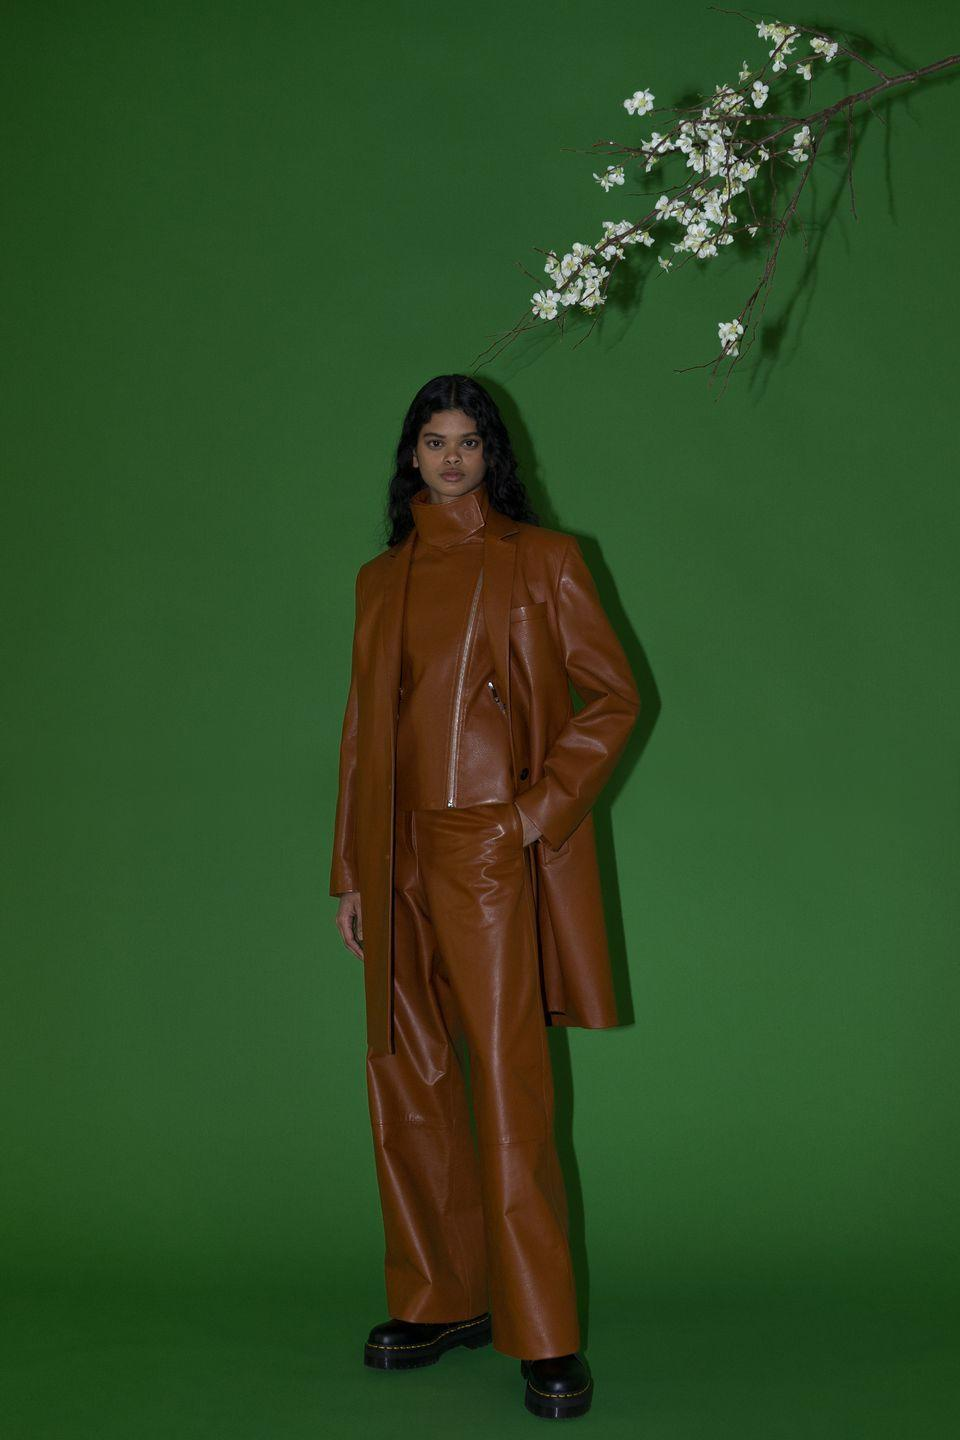 <p>Rossetta Getty collaborated once again with the artist Bernadette Van-Huy, who shot the new collection against a green screen. Embracing a sophisticated take on Nineties dressing, the designs featured plenty of leather layering, slip dresses teamed with chunky, lace-up boots and more than a few incredibly covetable coats. Shunning overly casual loungewear but also avoiding full-on party pieces, the collection was a great signal for how we should all be dressing come next autumn.</p>